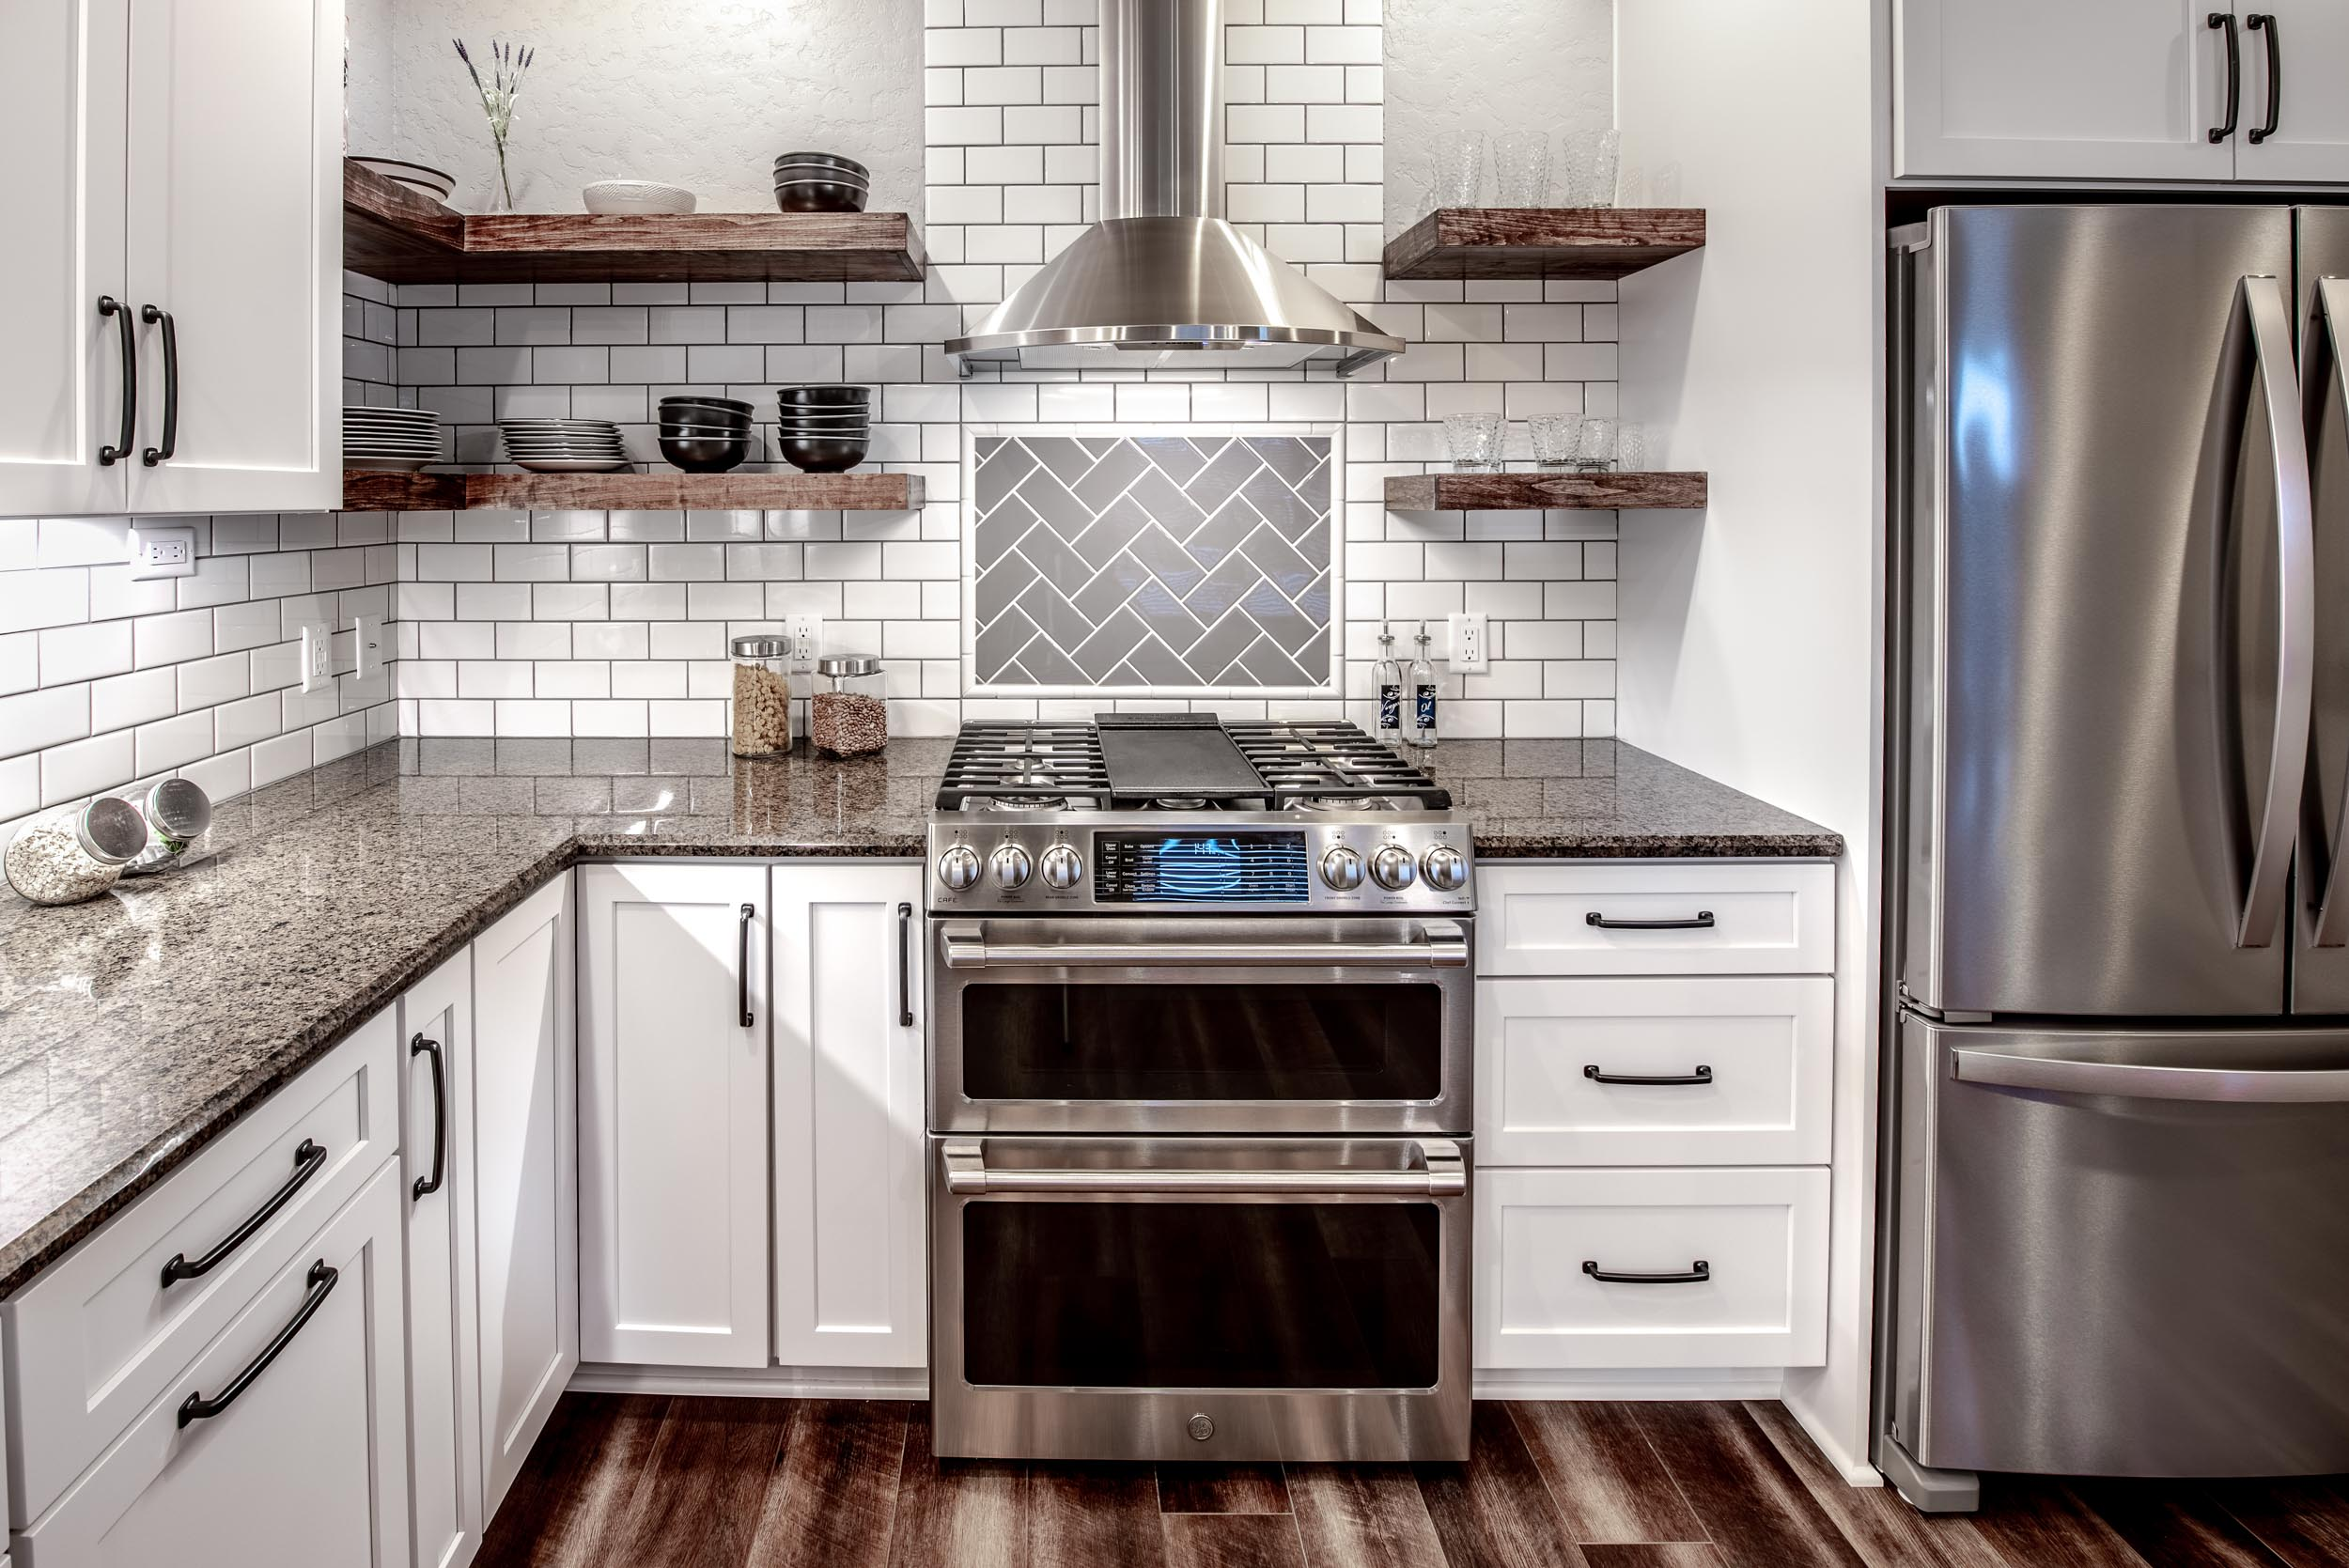 - This elegant stainless steel chimney hood provides a beautiful focal point and has high quality lighting for the gas range below.